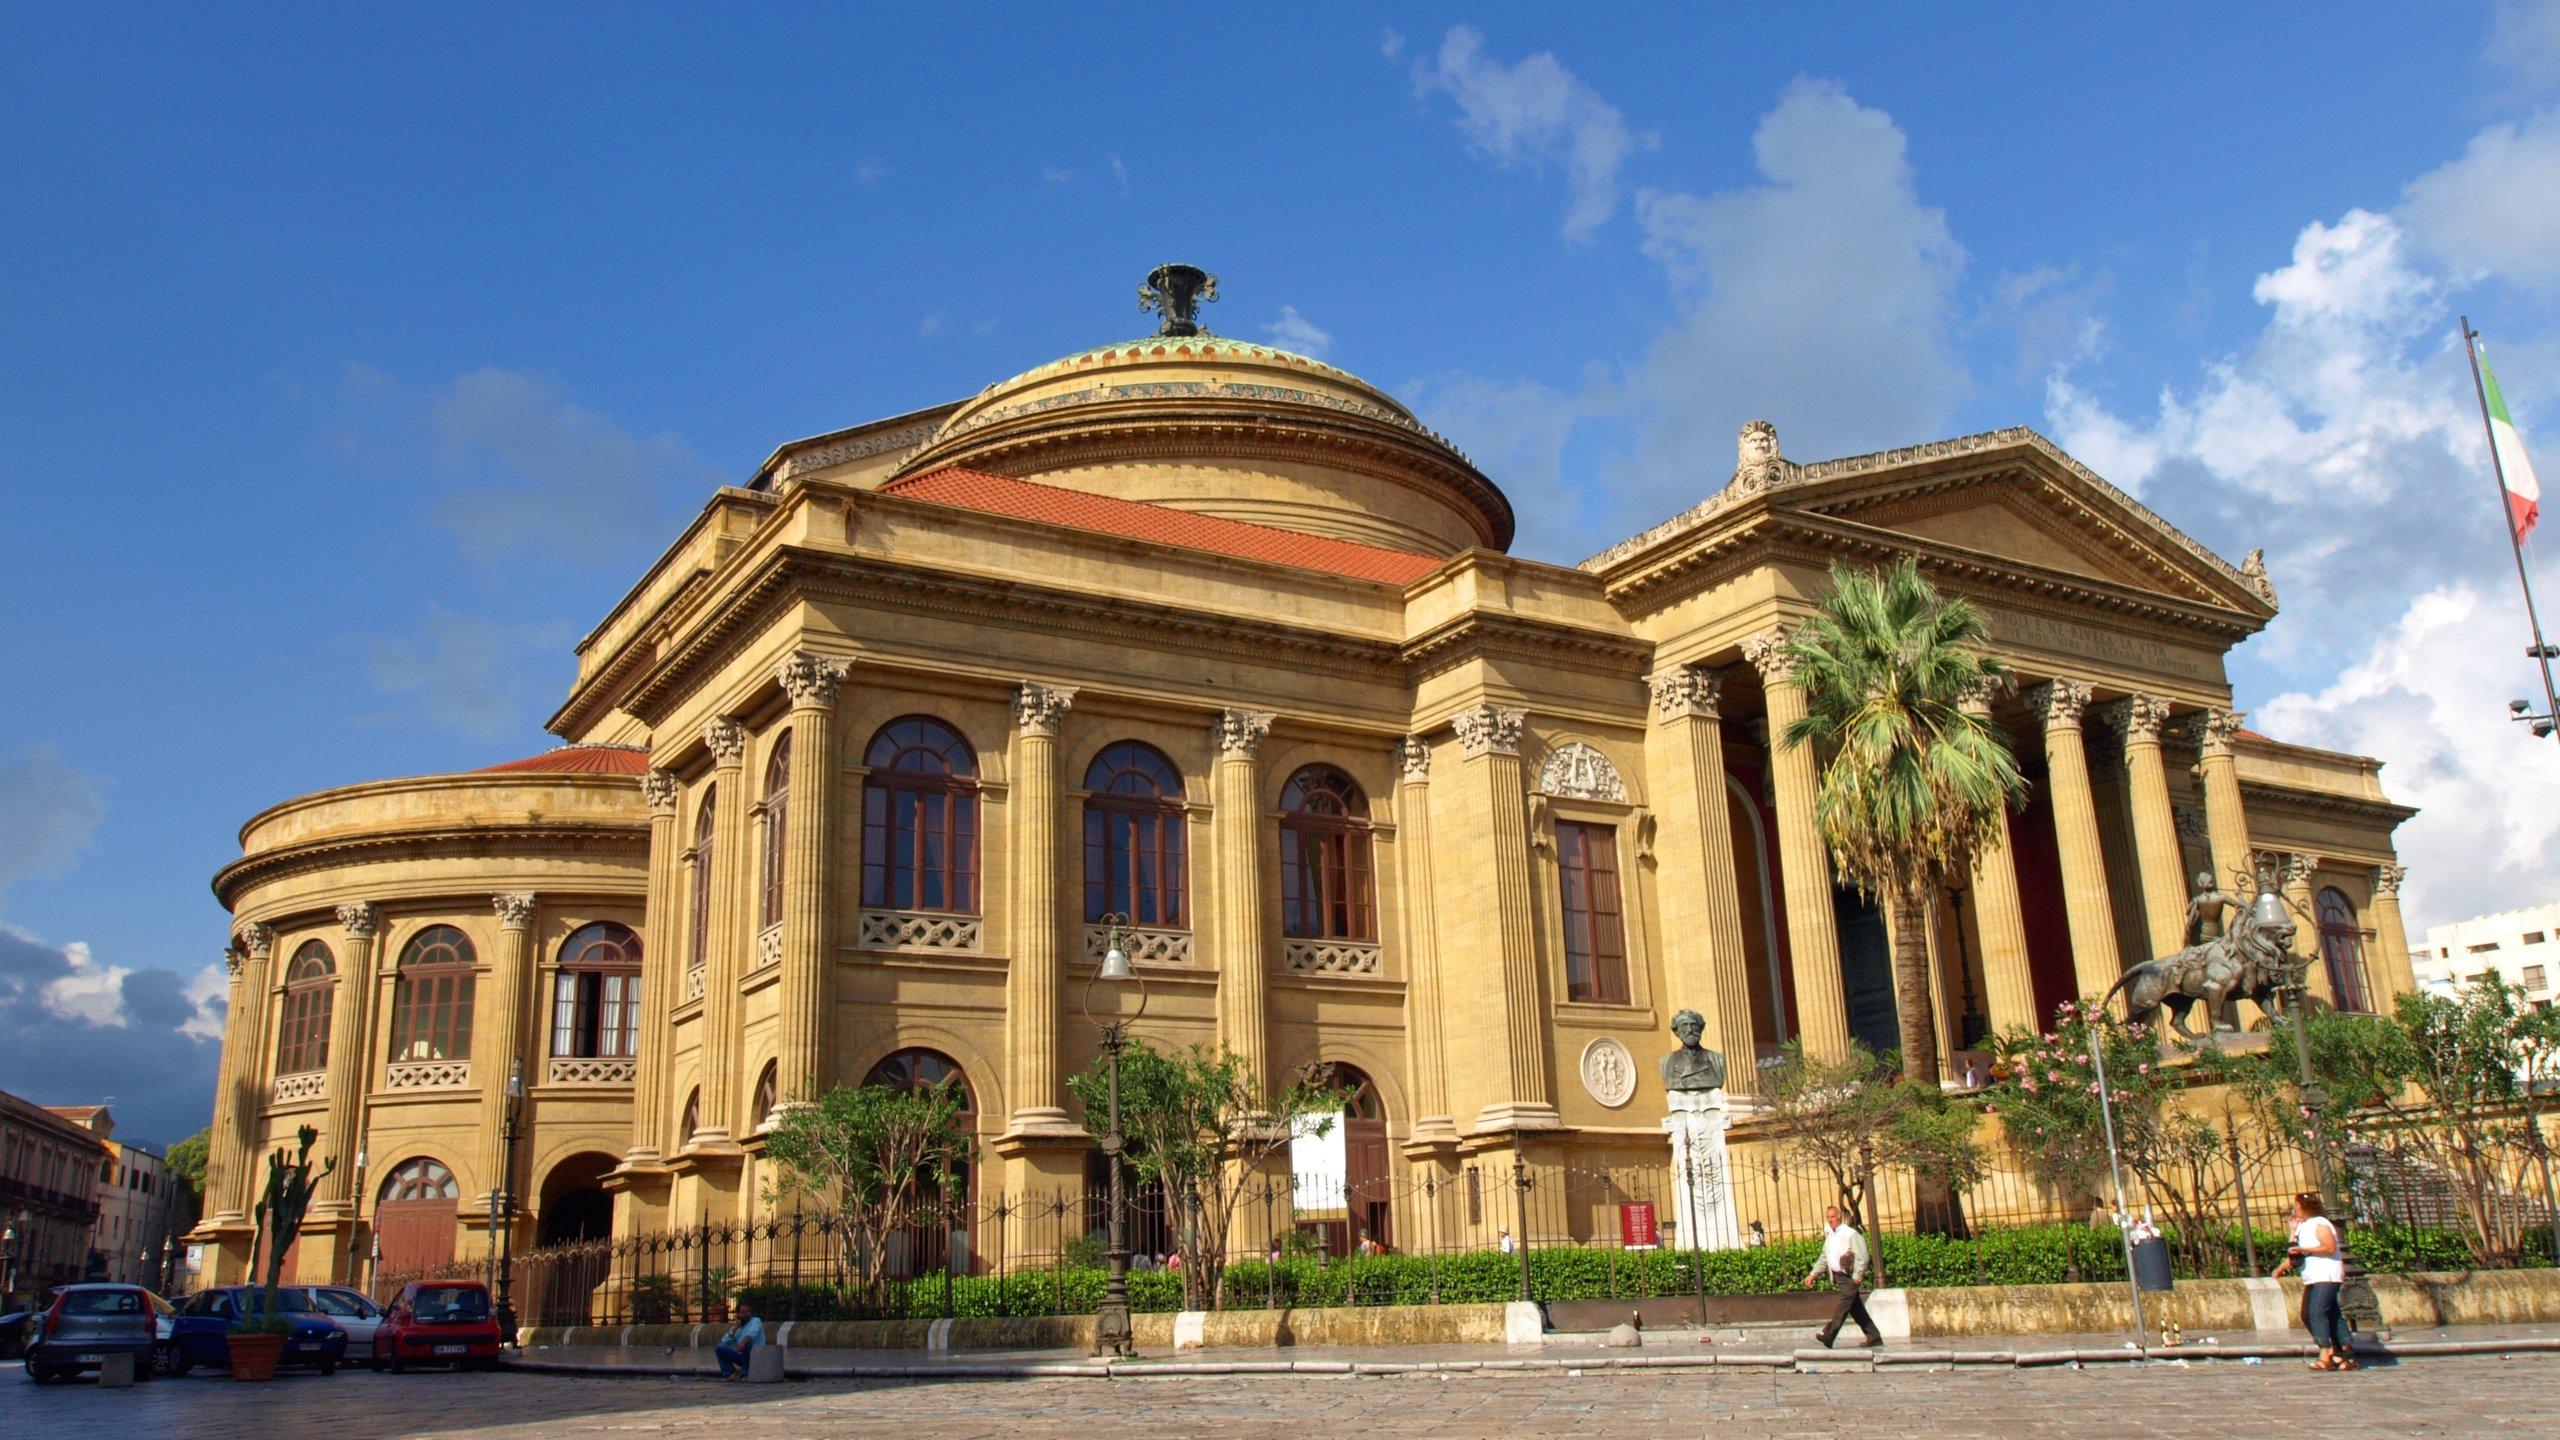 Enjoy a show at Teatro Massimo, a theater with a story to tell in Palermo. While in this culturally rich area, find time to visit its shops.